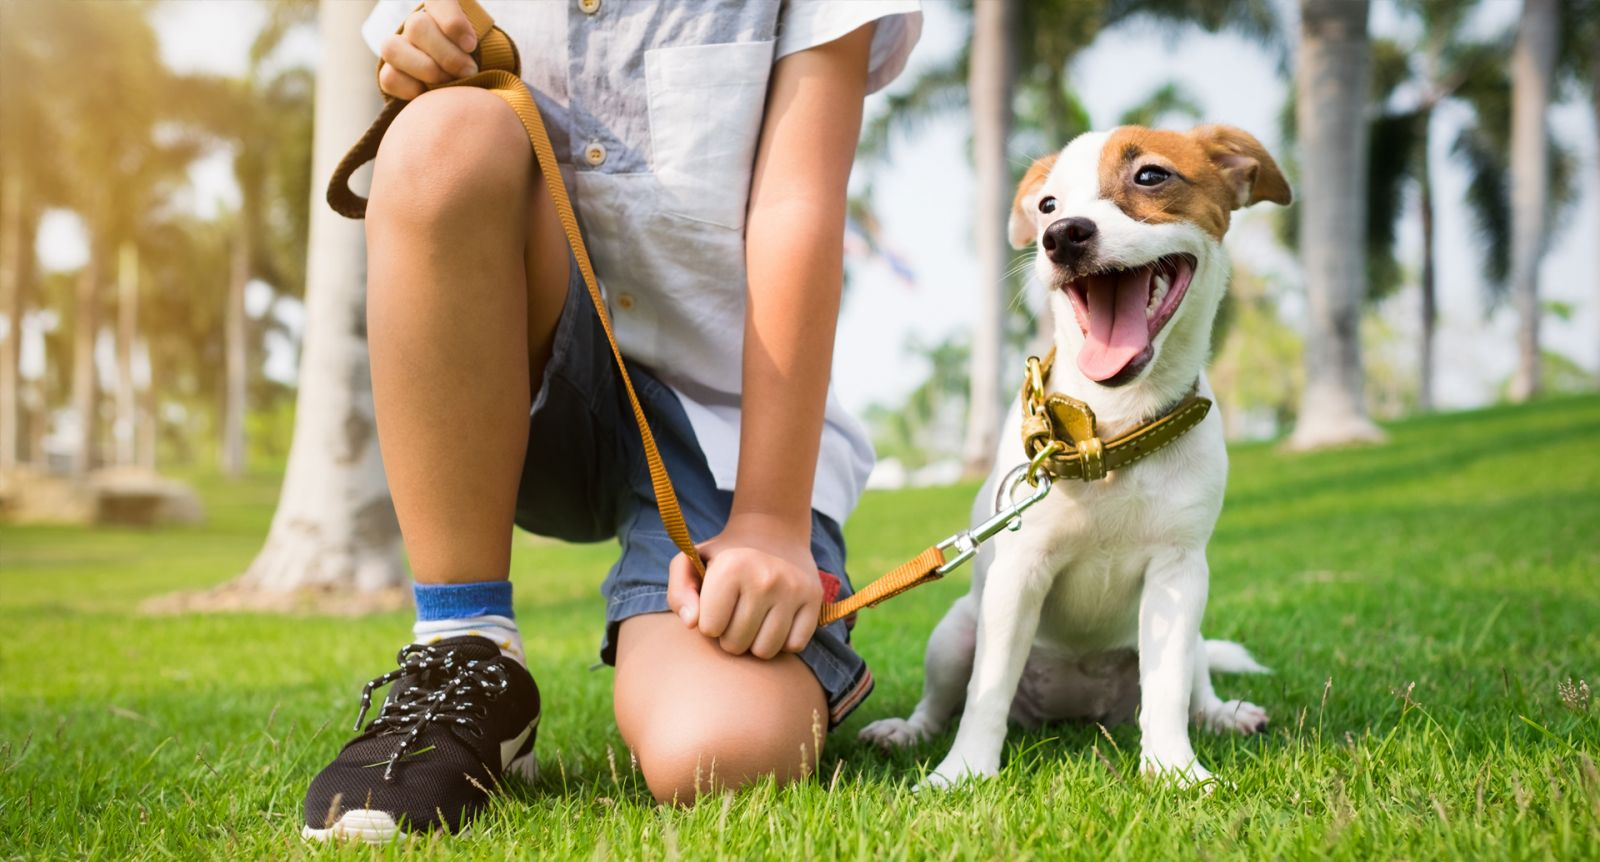 Excited Puppy on leash banner image